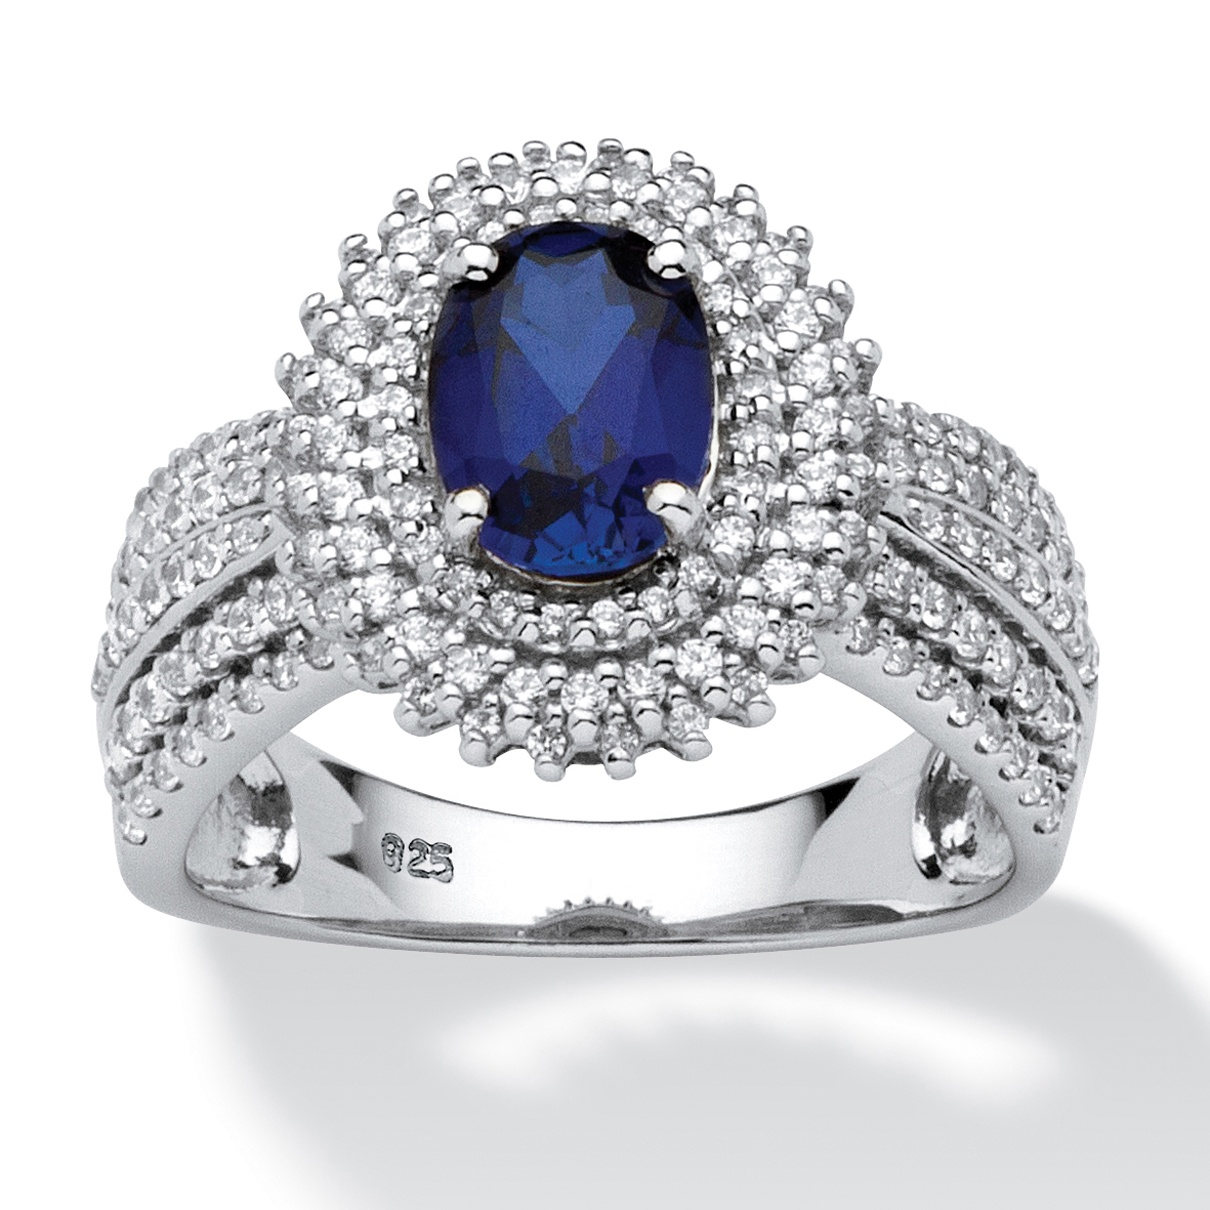 2.18 TCW Oval-Cut Lab Created Blue Sapphire Halo Ring in Platinum over Sterling Silver by PalmBeach Jewelry